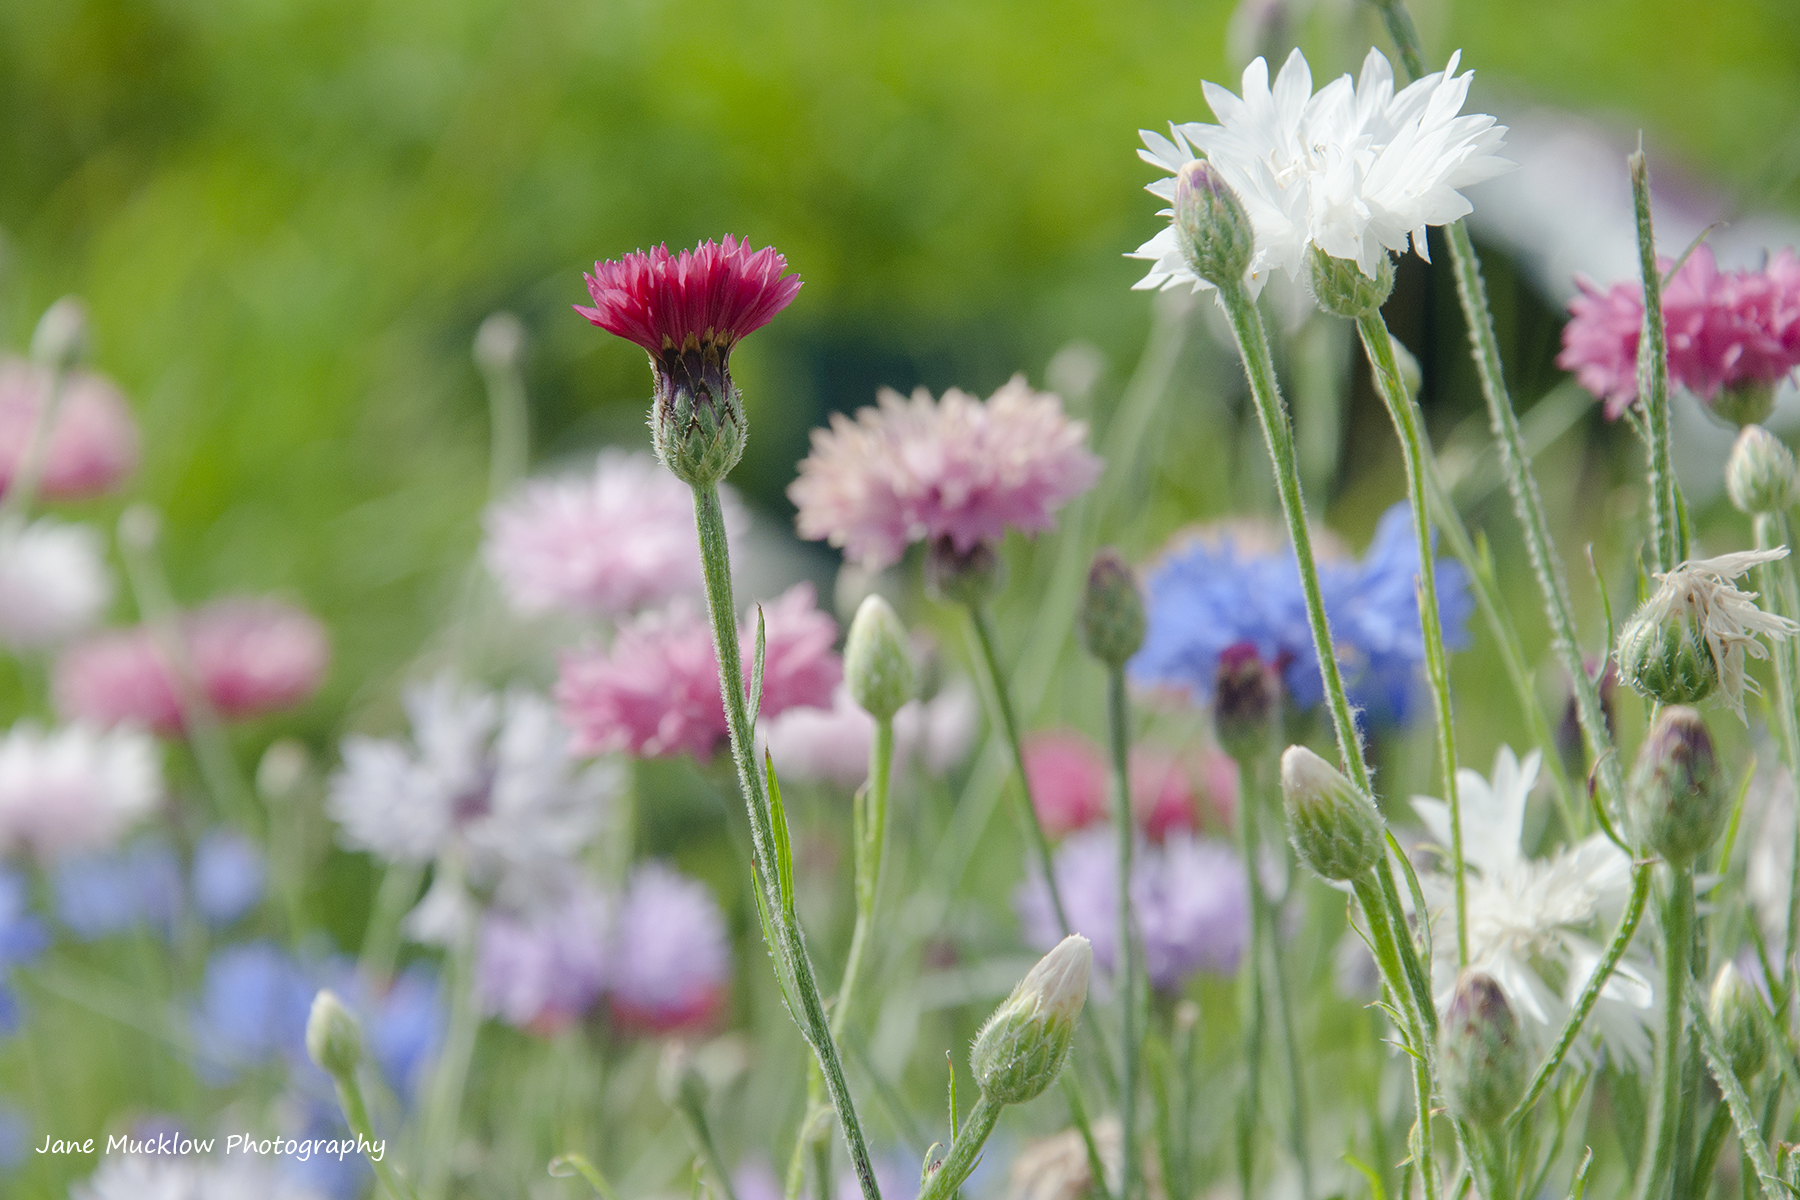 Photograph of pastel coloured cornflowers on a green background, by Jane Mucklow